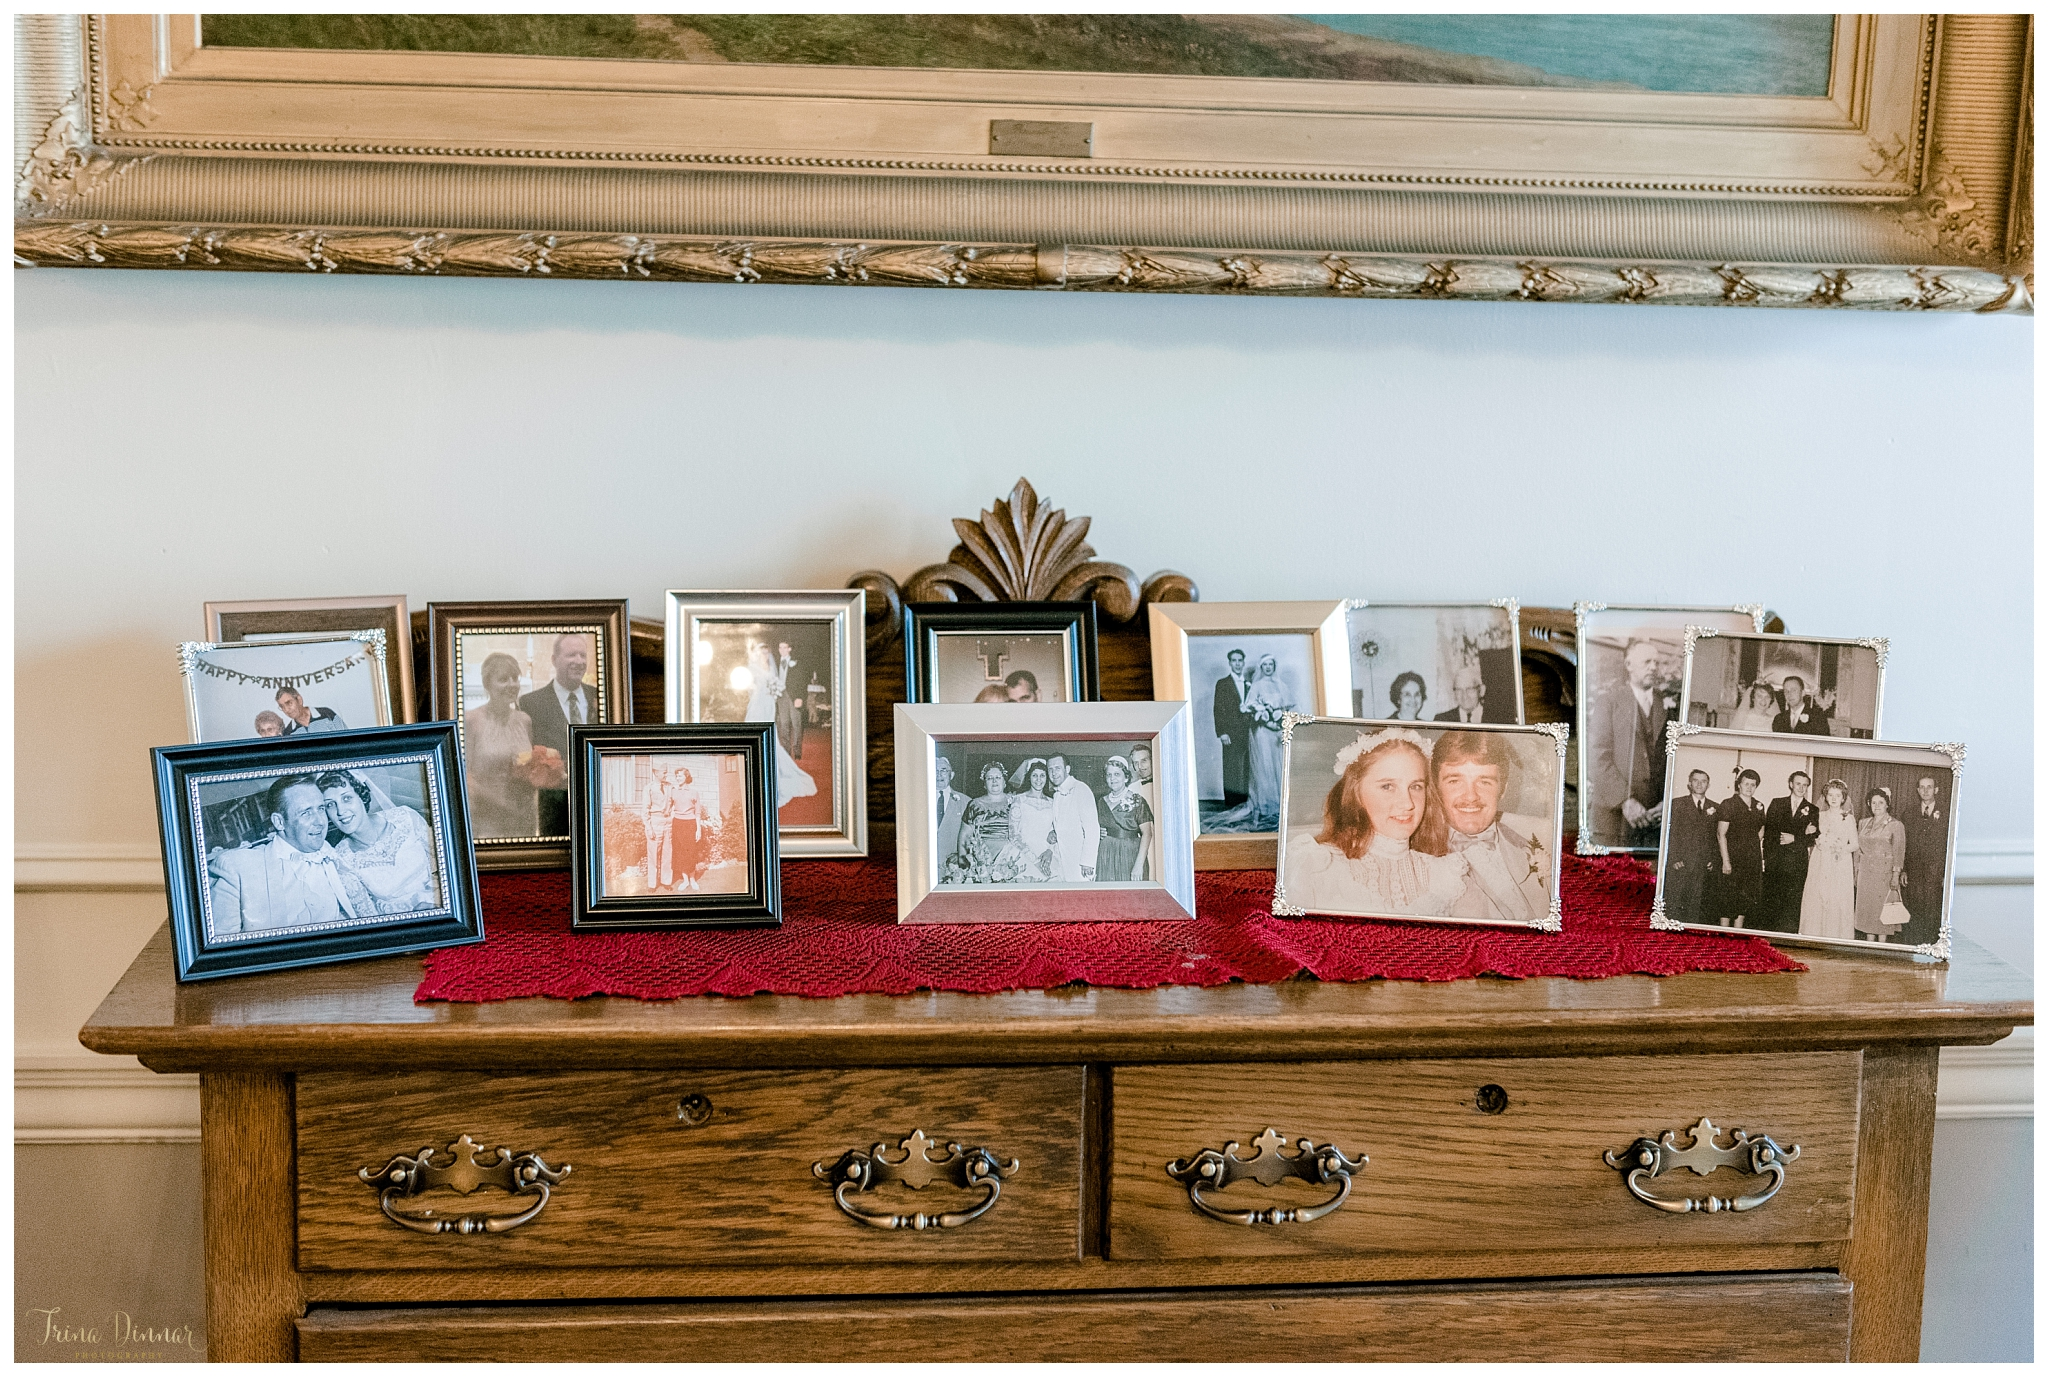 Old Framed Wedding Photographs on Display at Reception